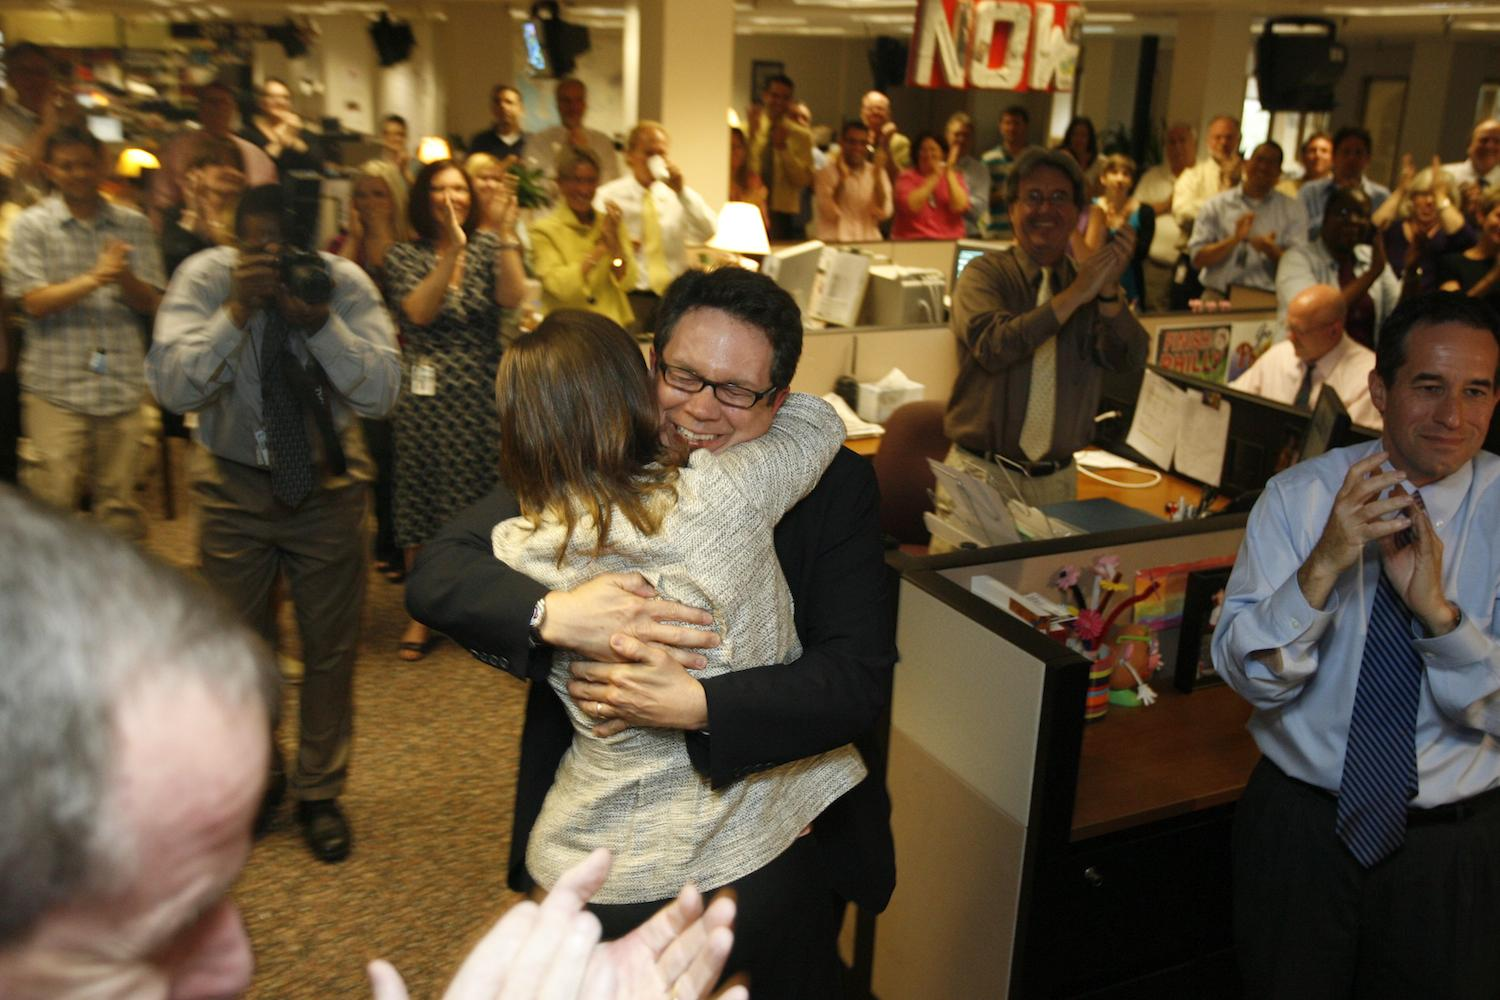 PolitiFact Founder Bill Adair receives congratulations from Reporter and Researcher Angie Drobnic Holan in the newsroom of the St. Petersburg Times.